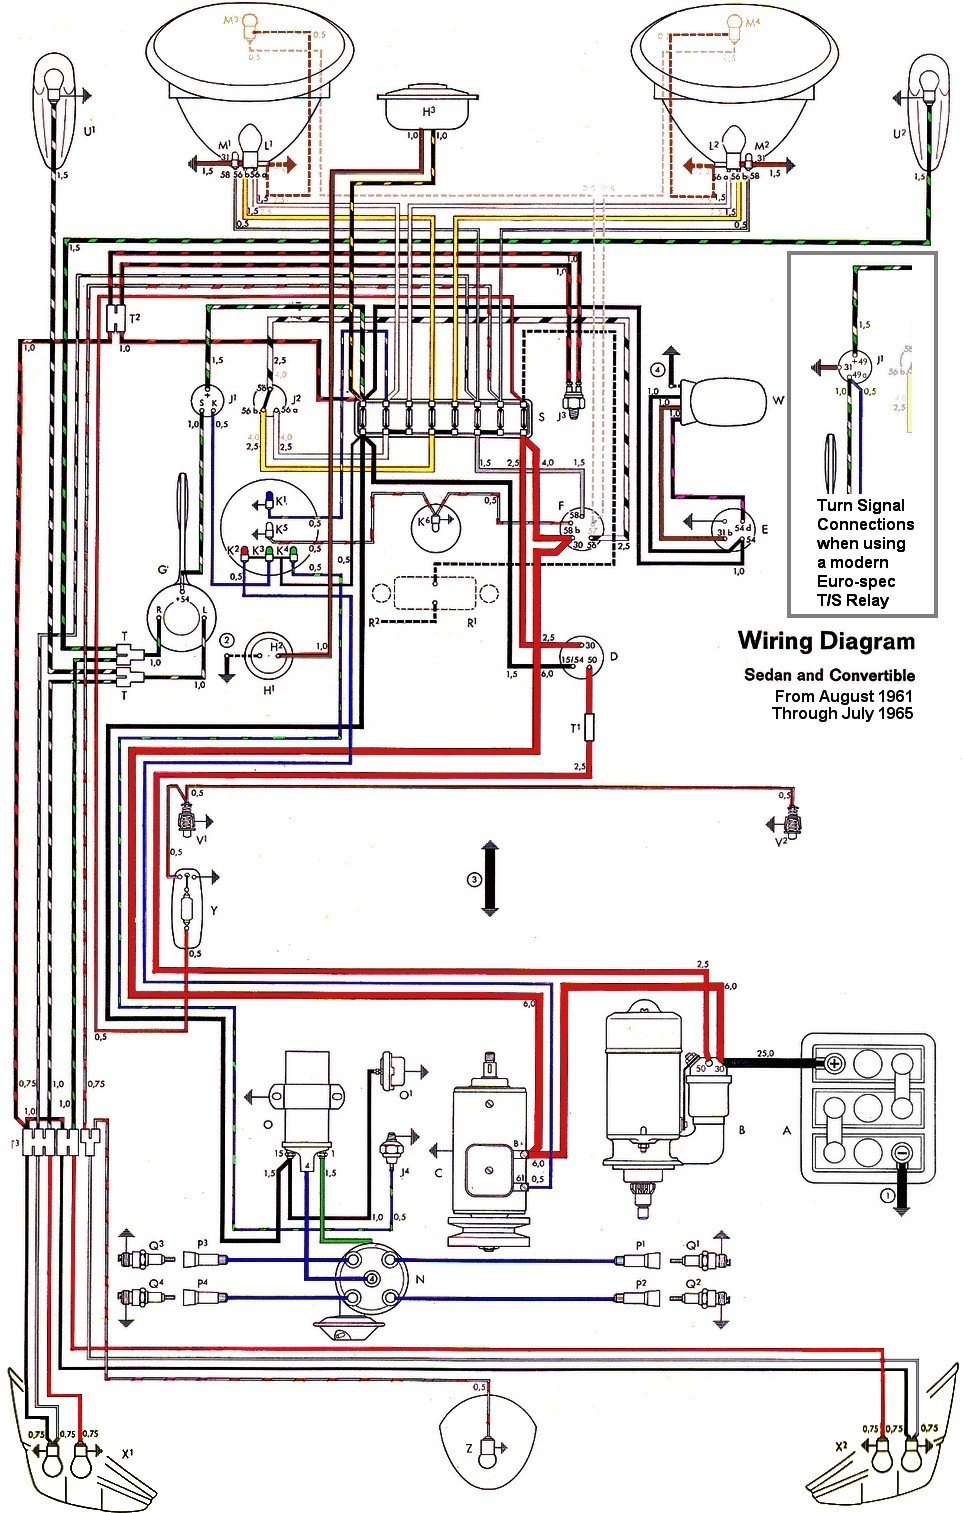 Vw Wiring Diagrams 1963 Diagram Will Be A Thing Simple Comfort 2200 Thermostat Thesamba Com Type 1 Rh Trike